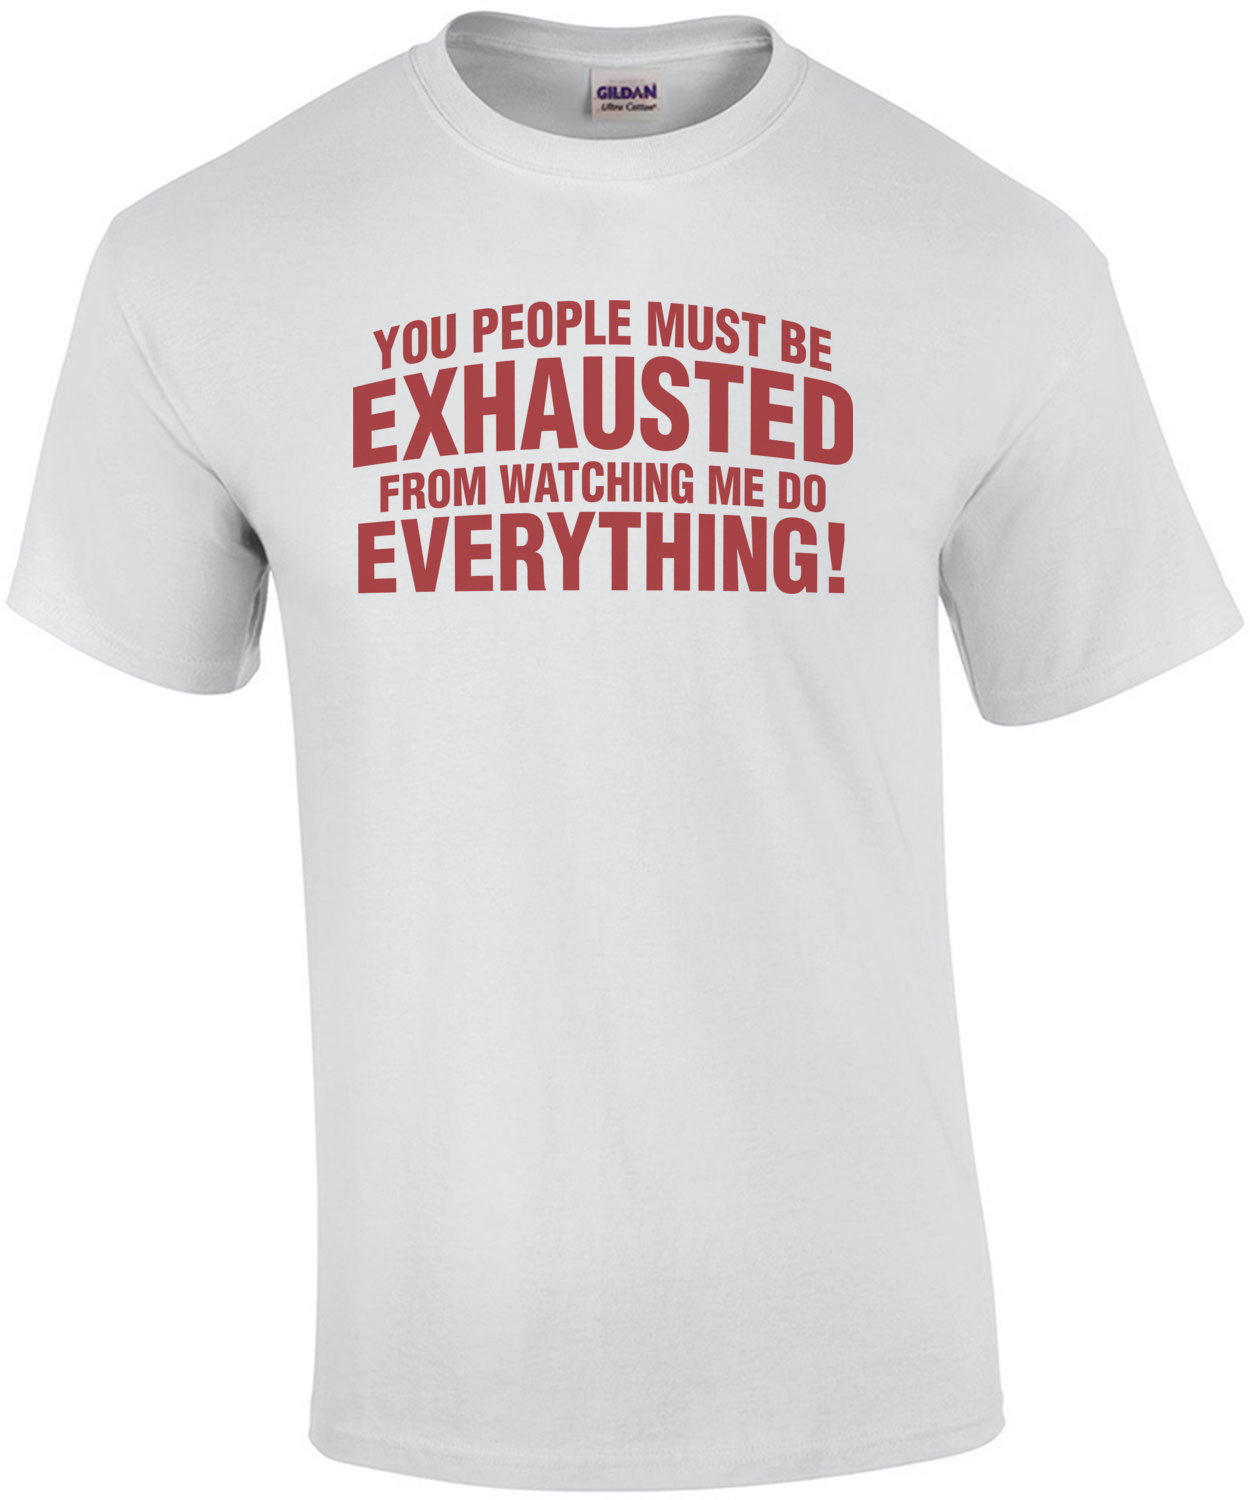 You People Must Be Exhausted From Watching Me Do Everything Shirt